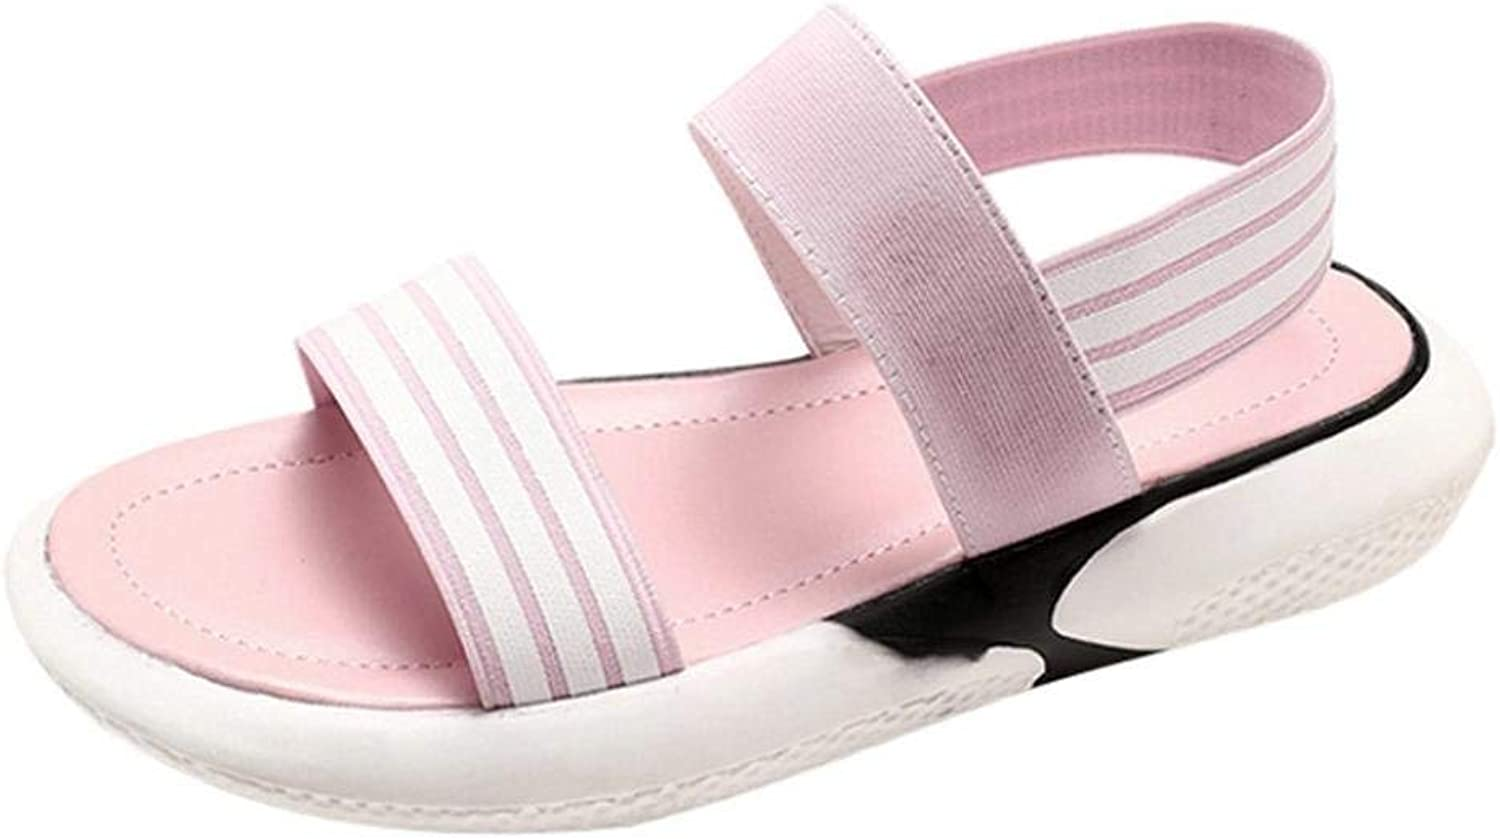 JaHGDU Fashion Women Sandals Beach Daily Summer Boom shoes Wedges Weave Middle Heel Low Top Elastic Casual Sandals